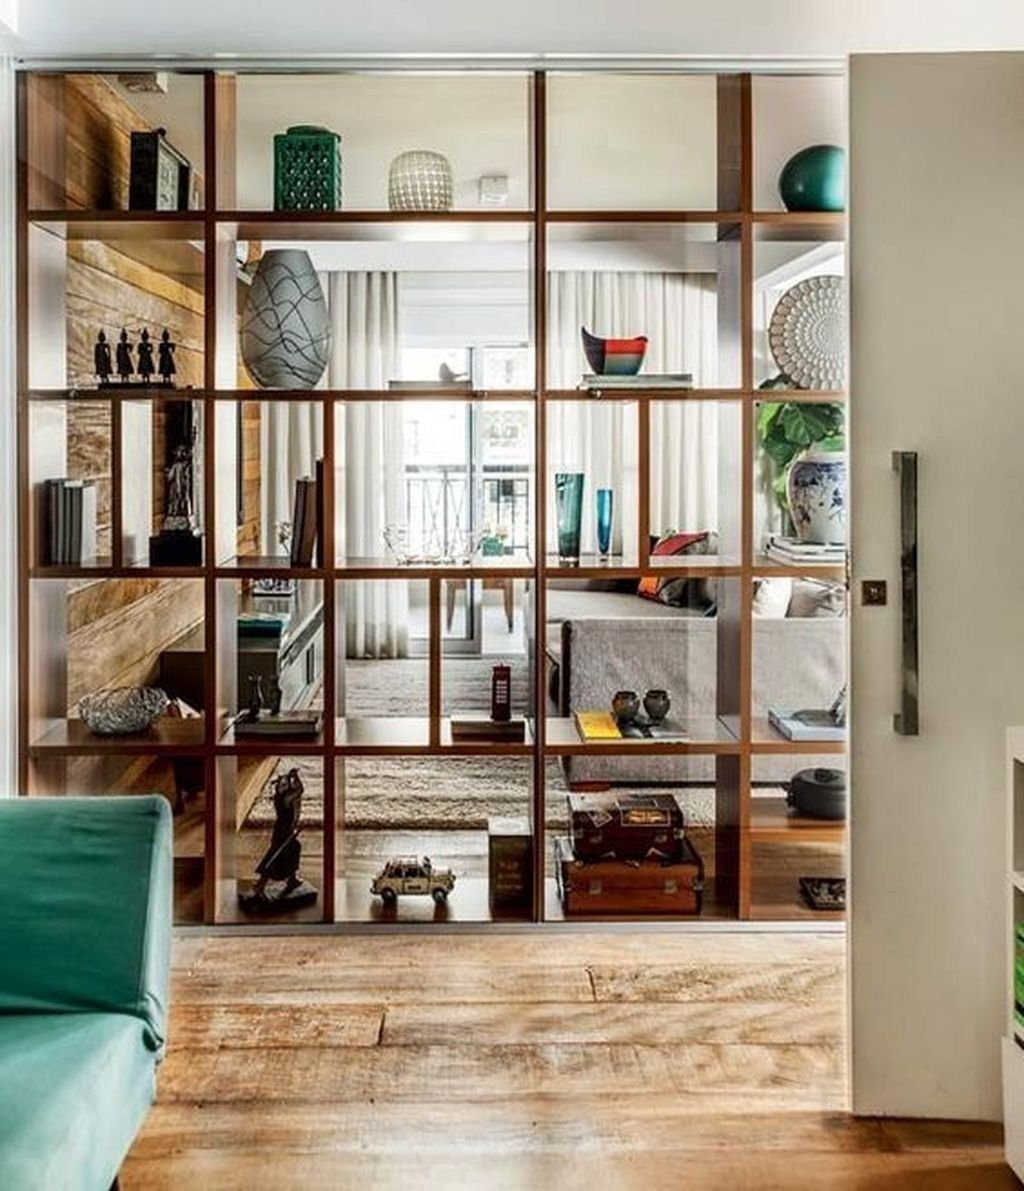 Beautiful Open Kitchens With Unique Partitions And Room Dividers